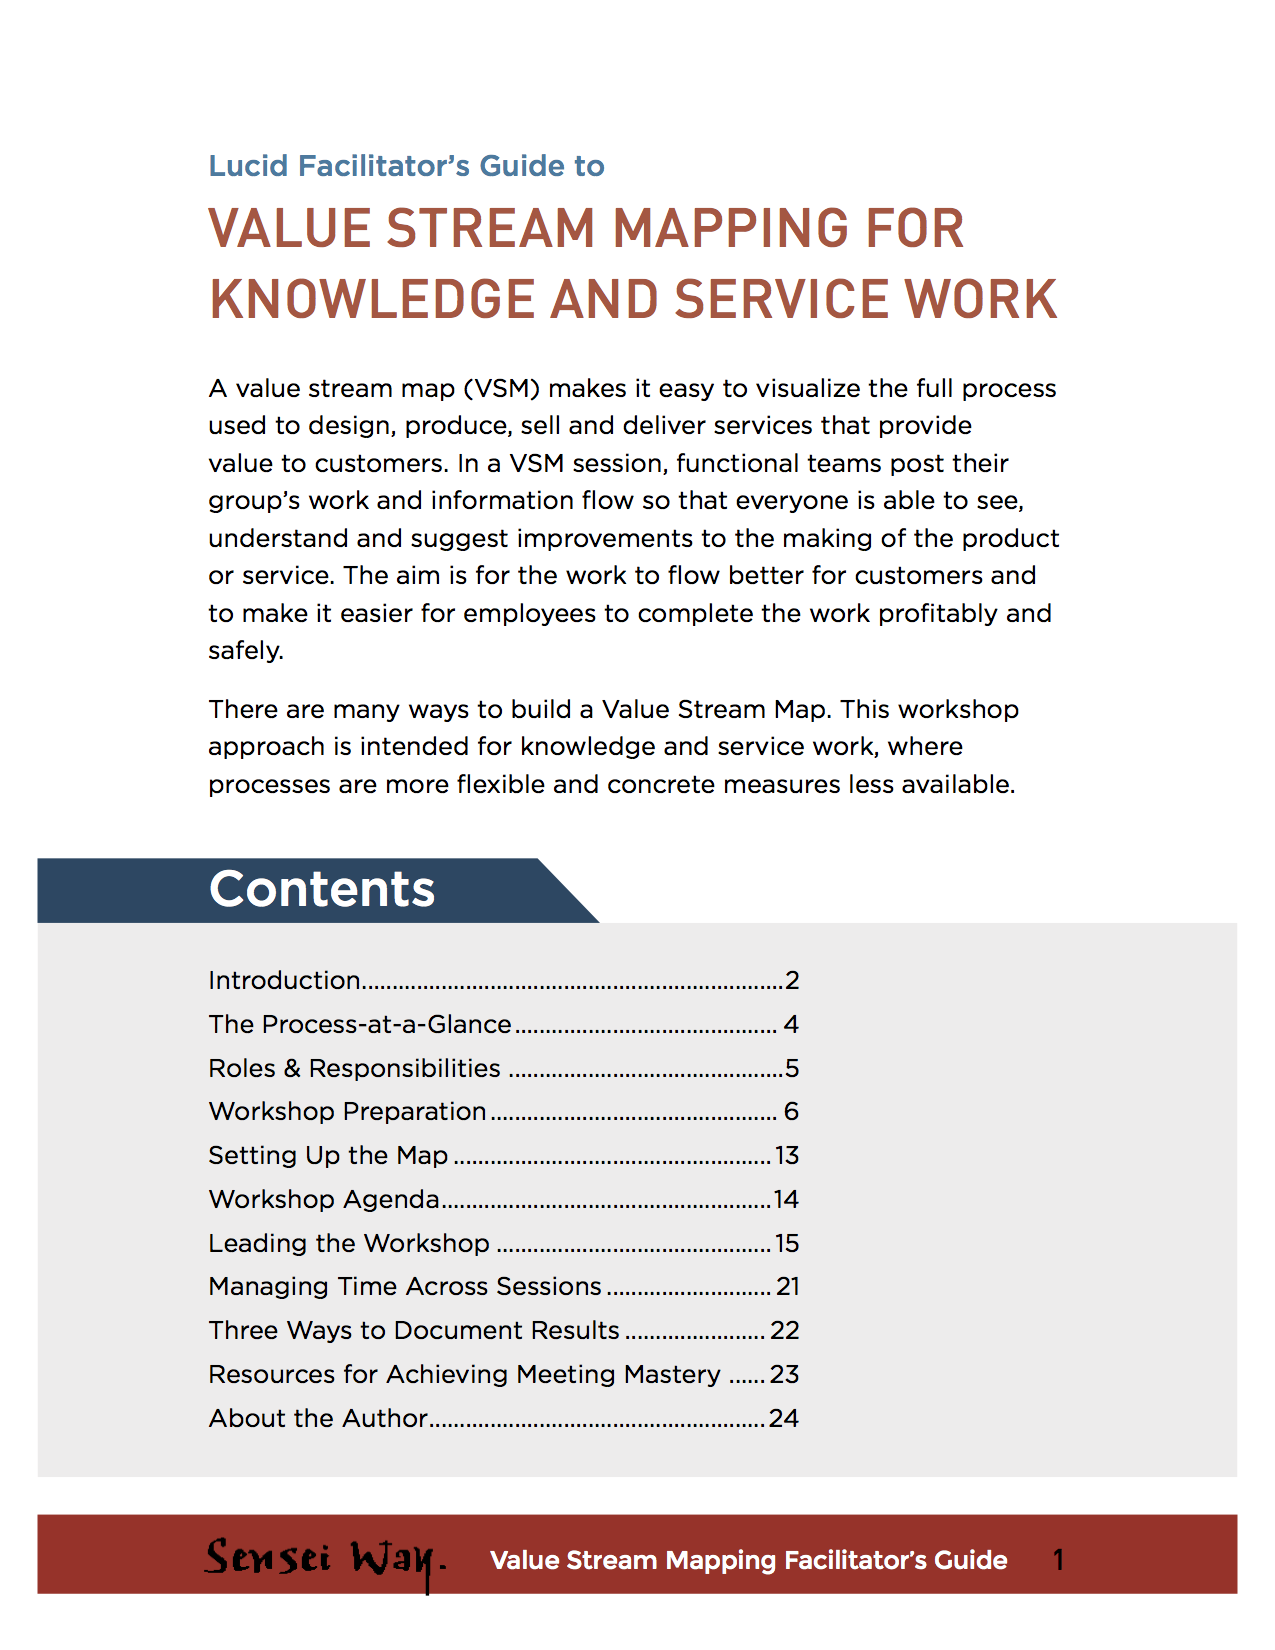 Value-Stream-Mapping-Facilitators-Guide.png